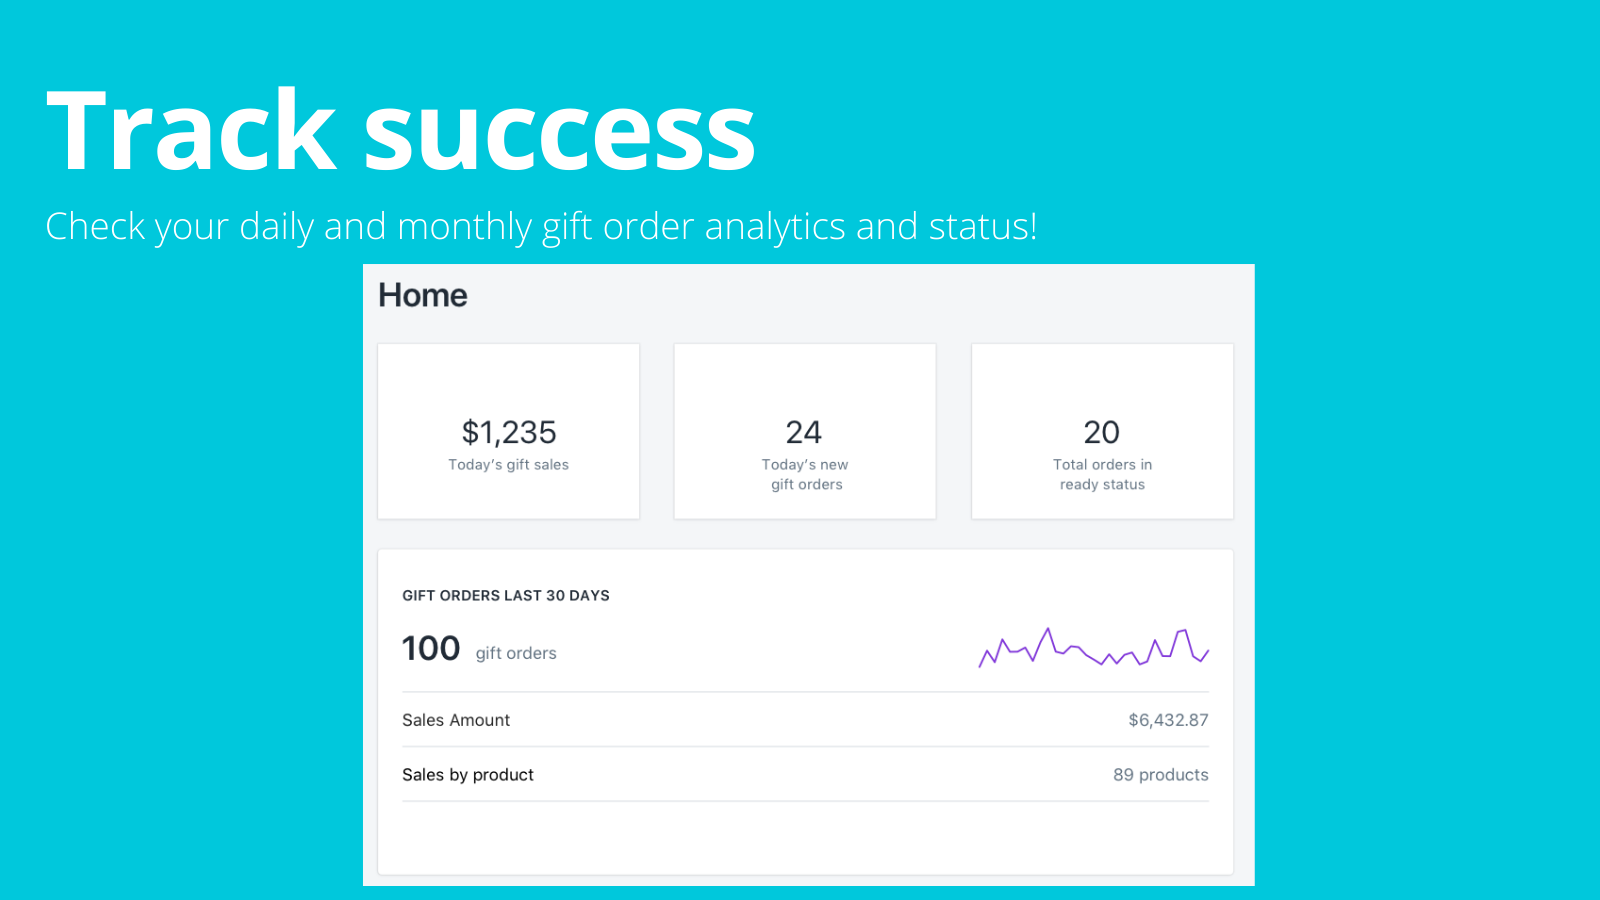 Track success with Beneticon!